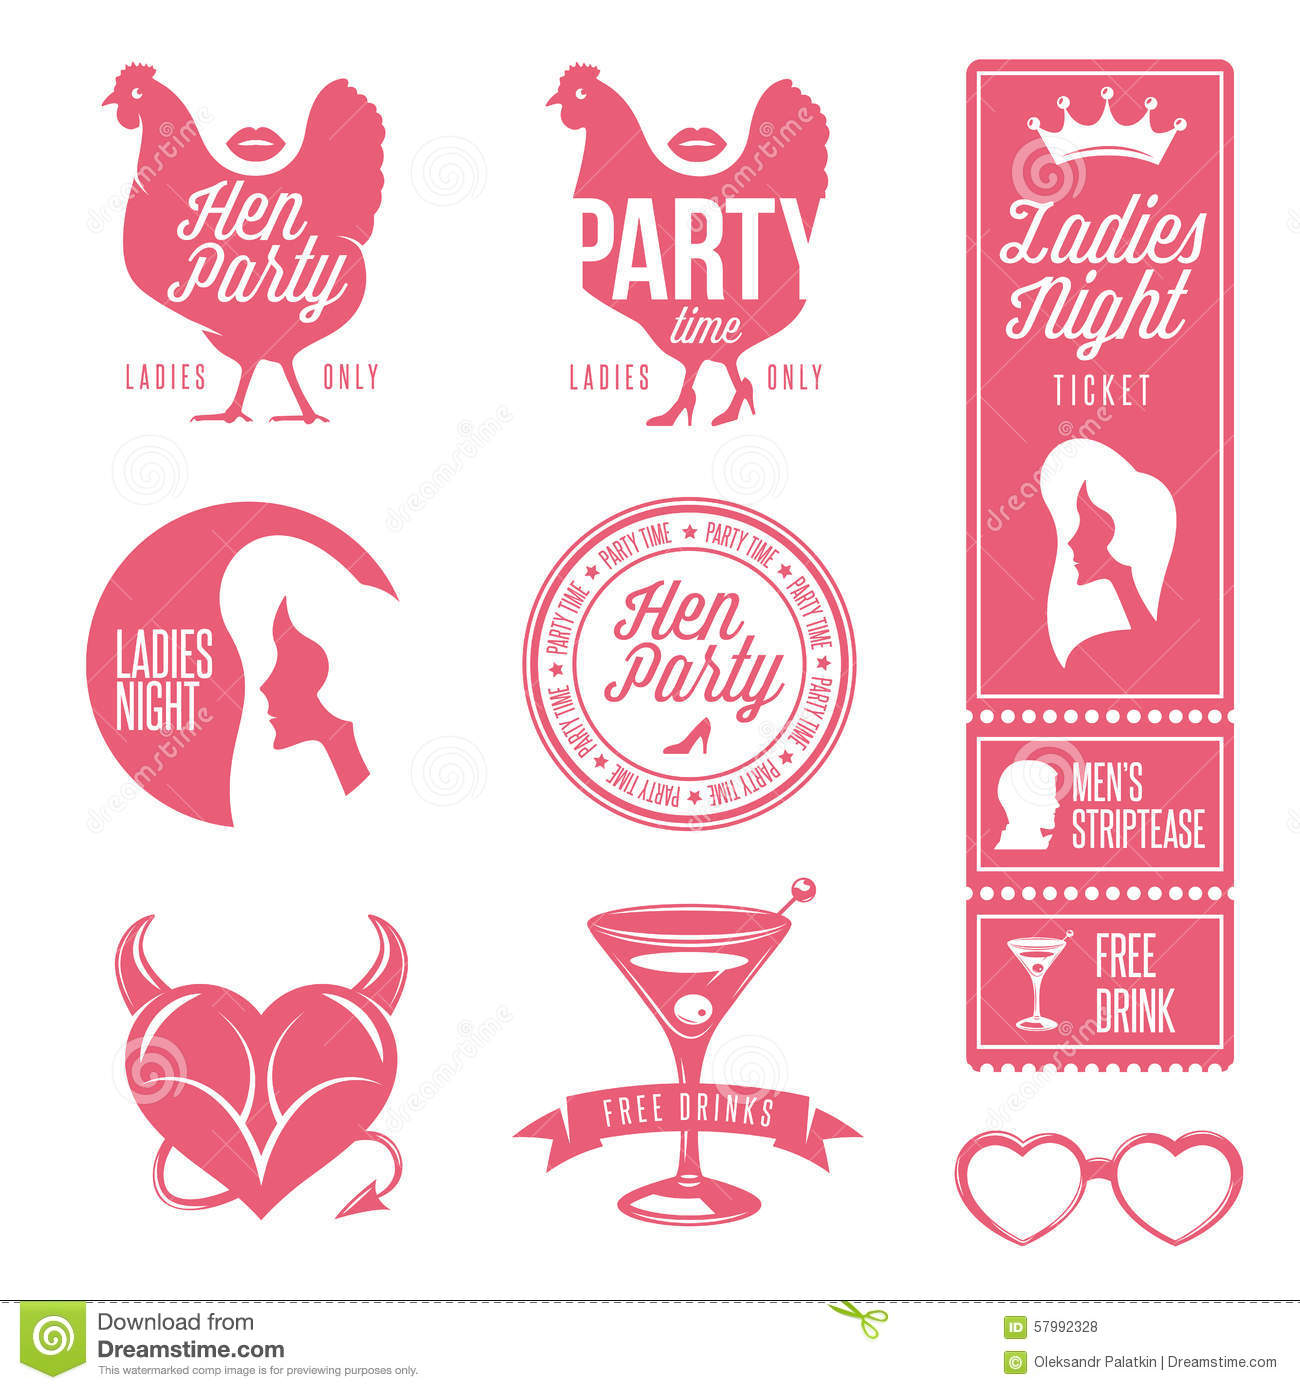 Girls Night Out Invitation as best invitations template